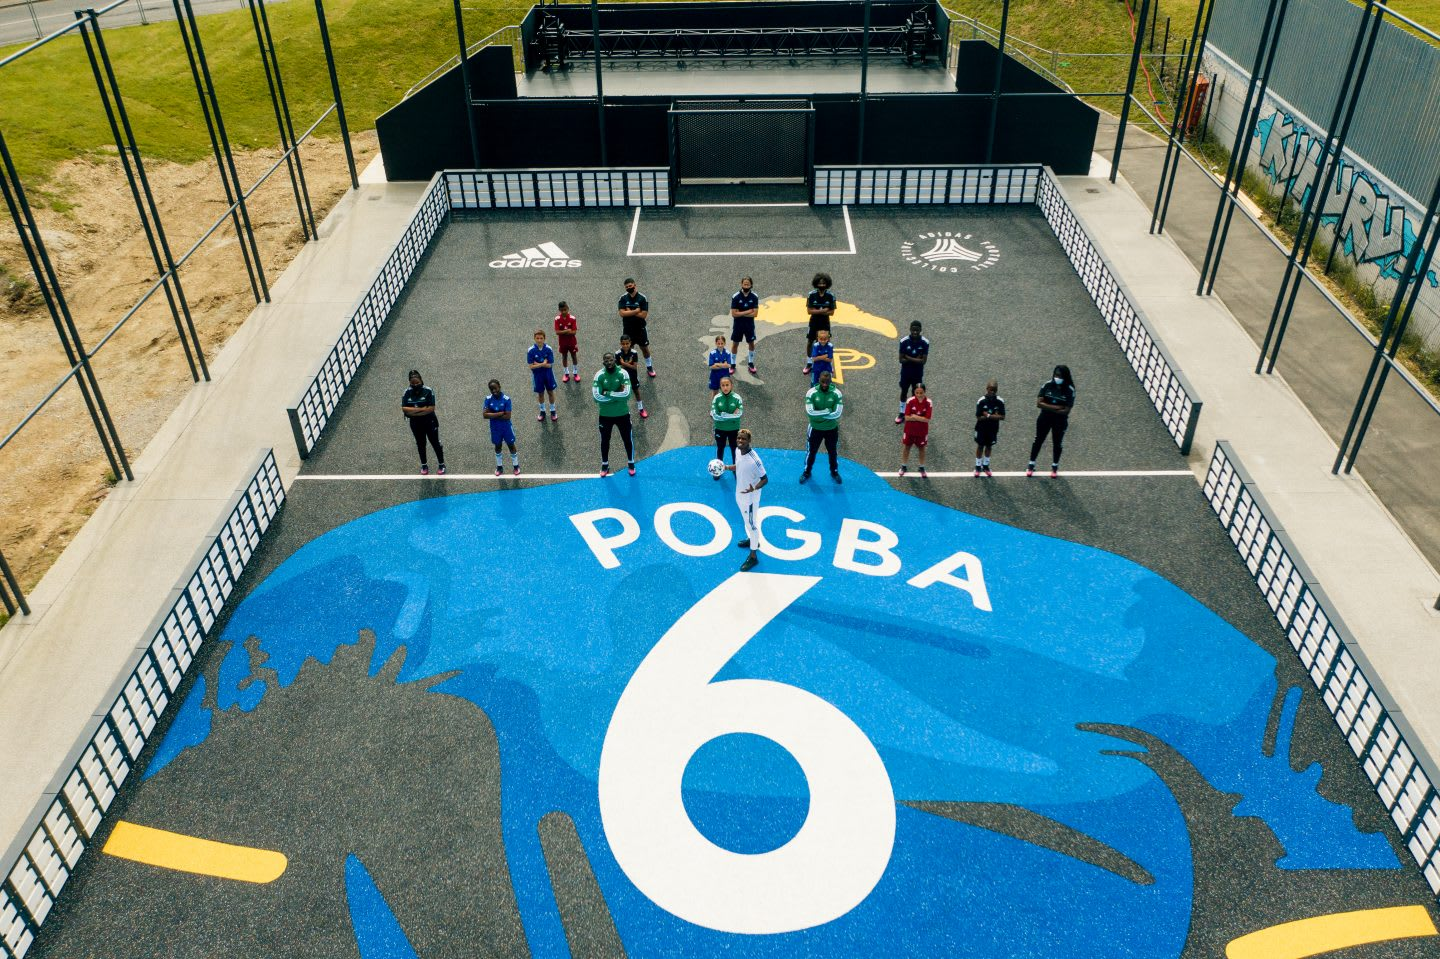 Pogba standing with a group of people on his court. football, community, france, football court, playing football